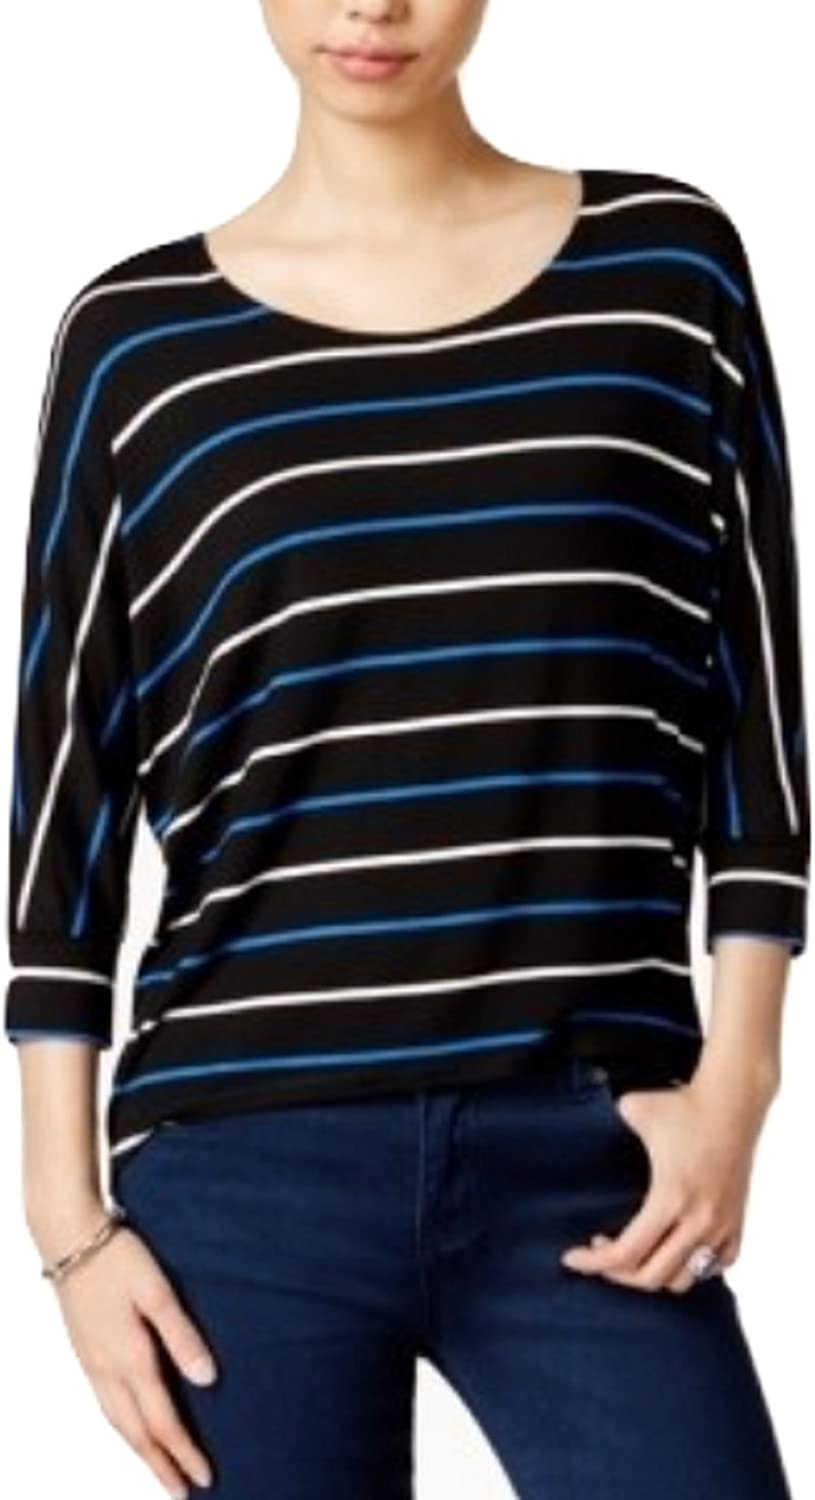 Maison Jules Striped DolmanSleeve Top